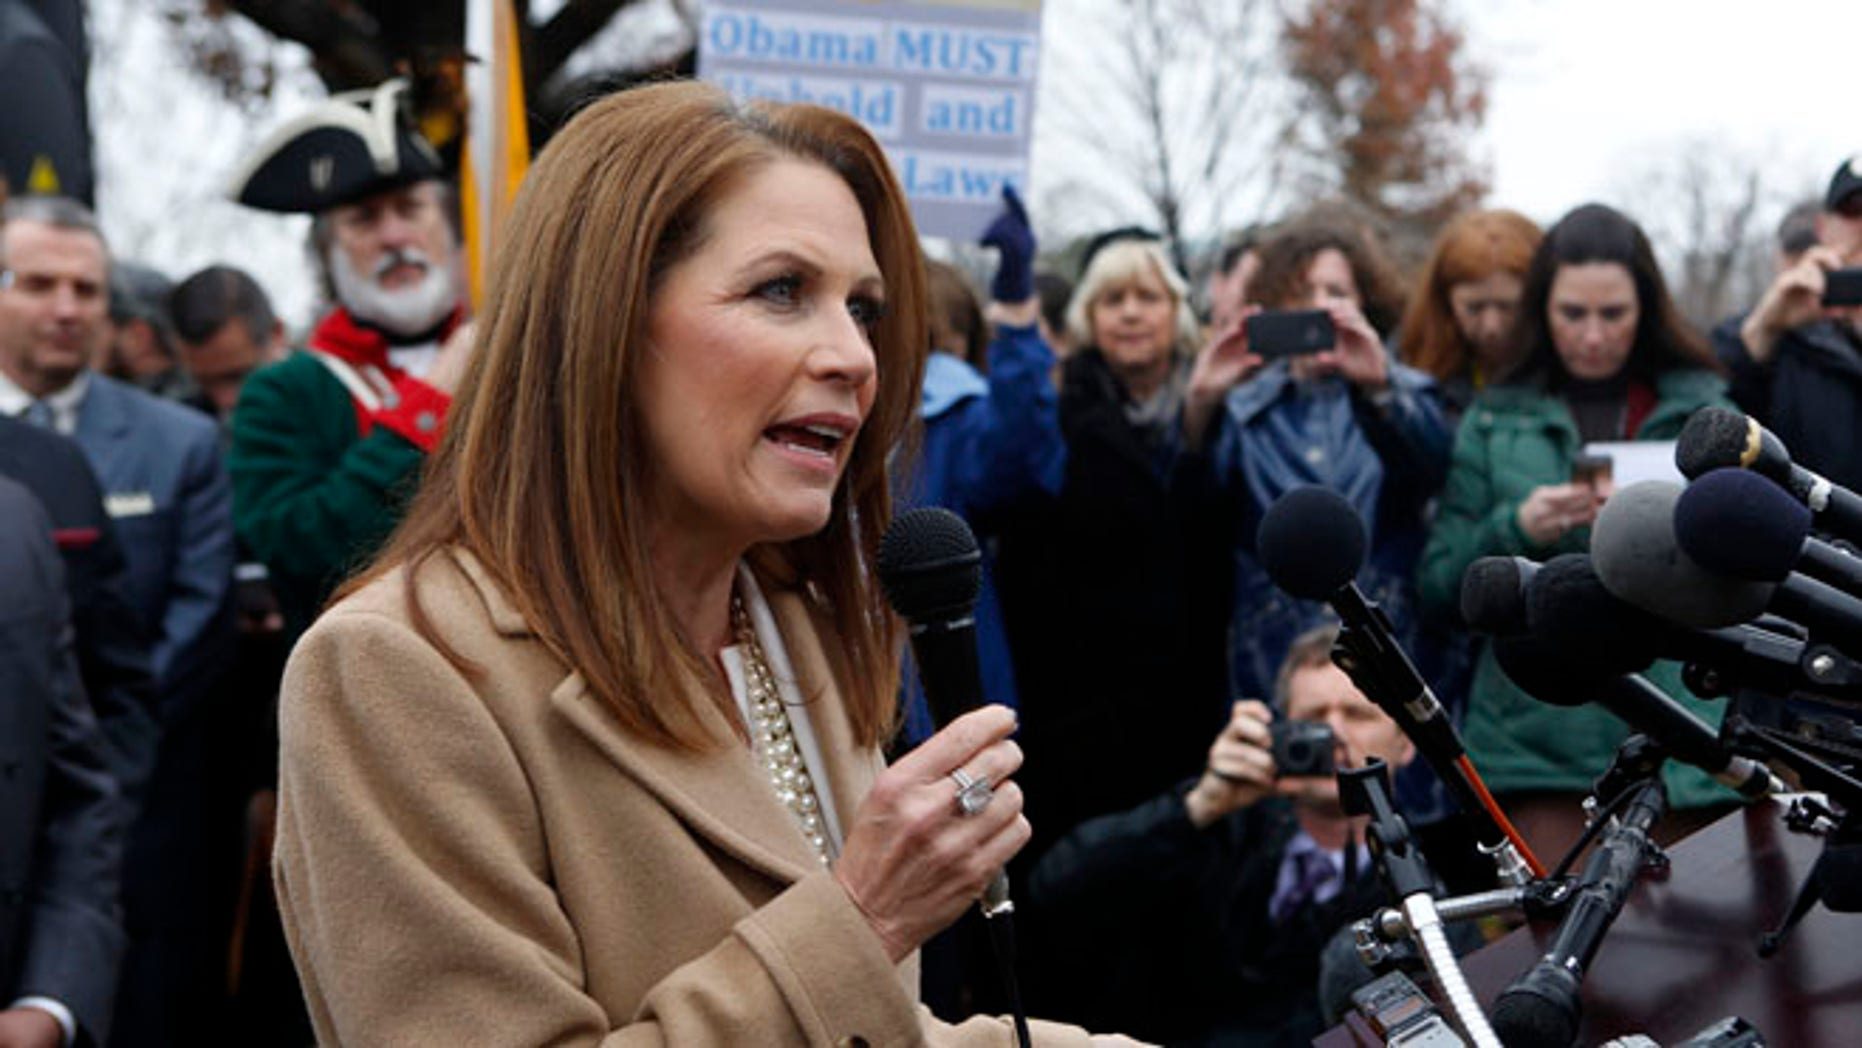 FILE: Dec. 3, 2014: Rep. Michele Bachmann, R-Minn., on Capitol Hill in Washington, D.C.